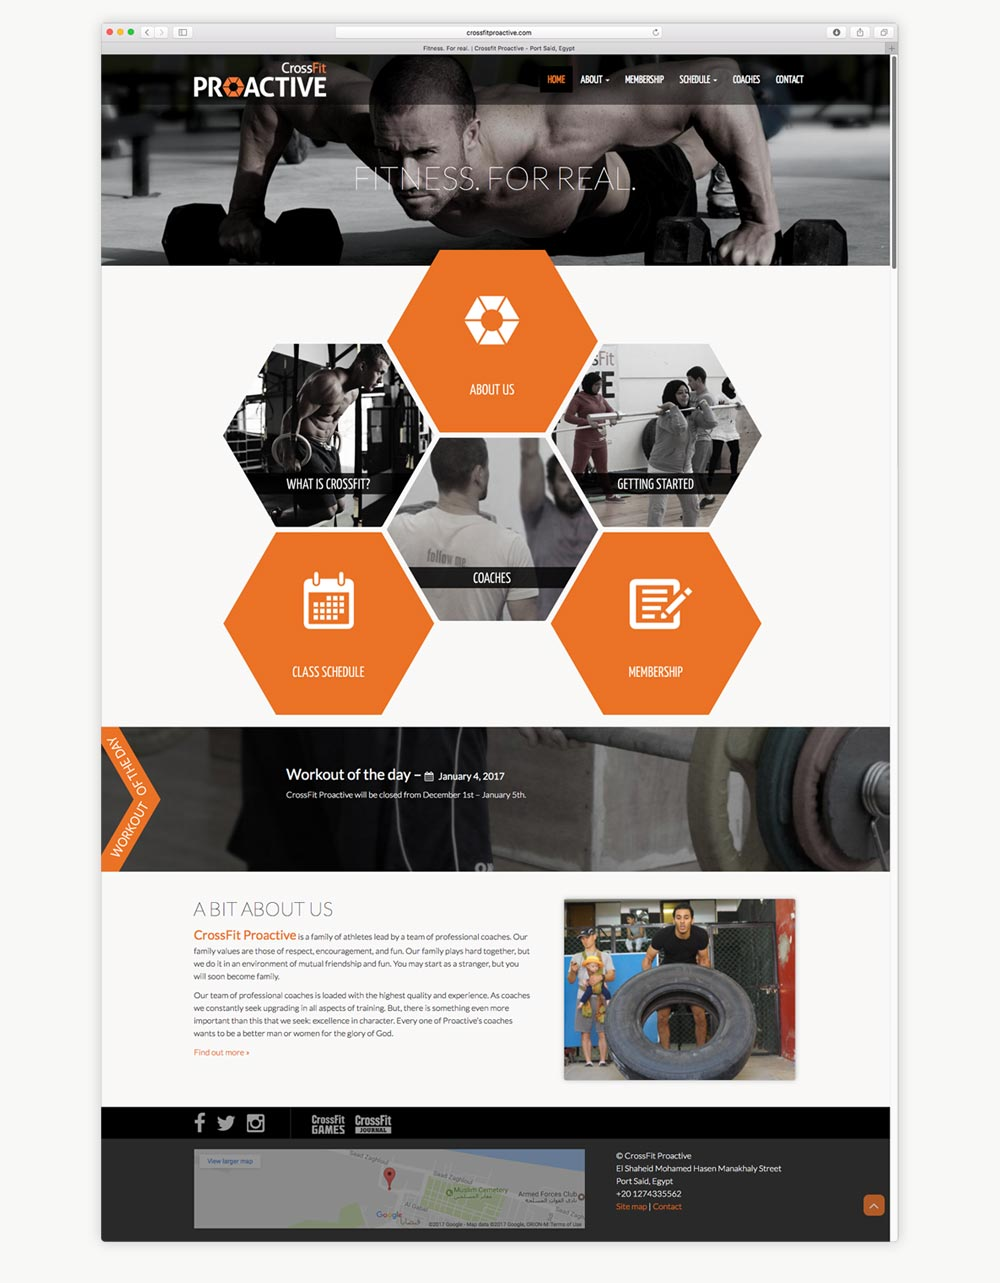 crossfit-proactive-web1